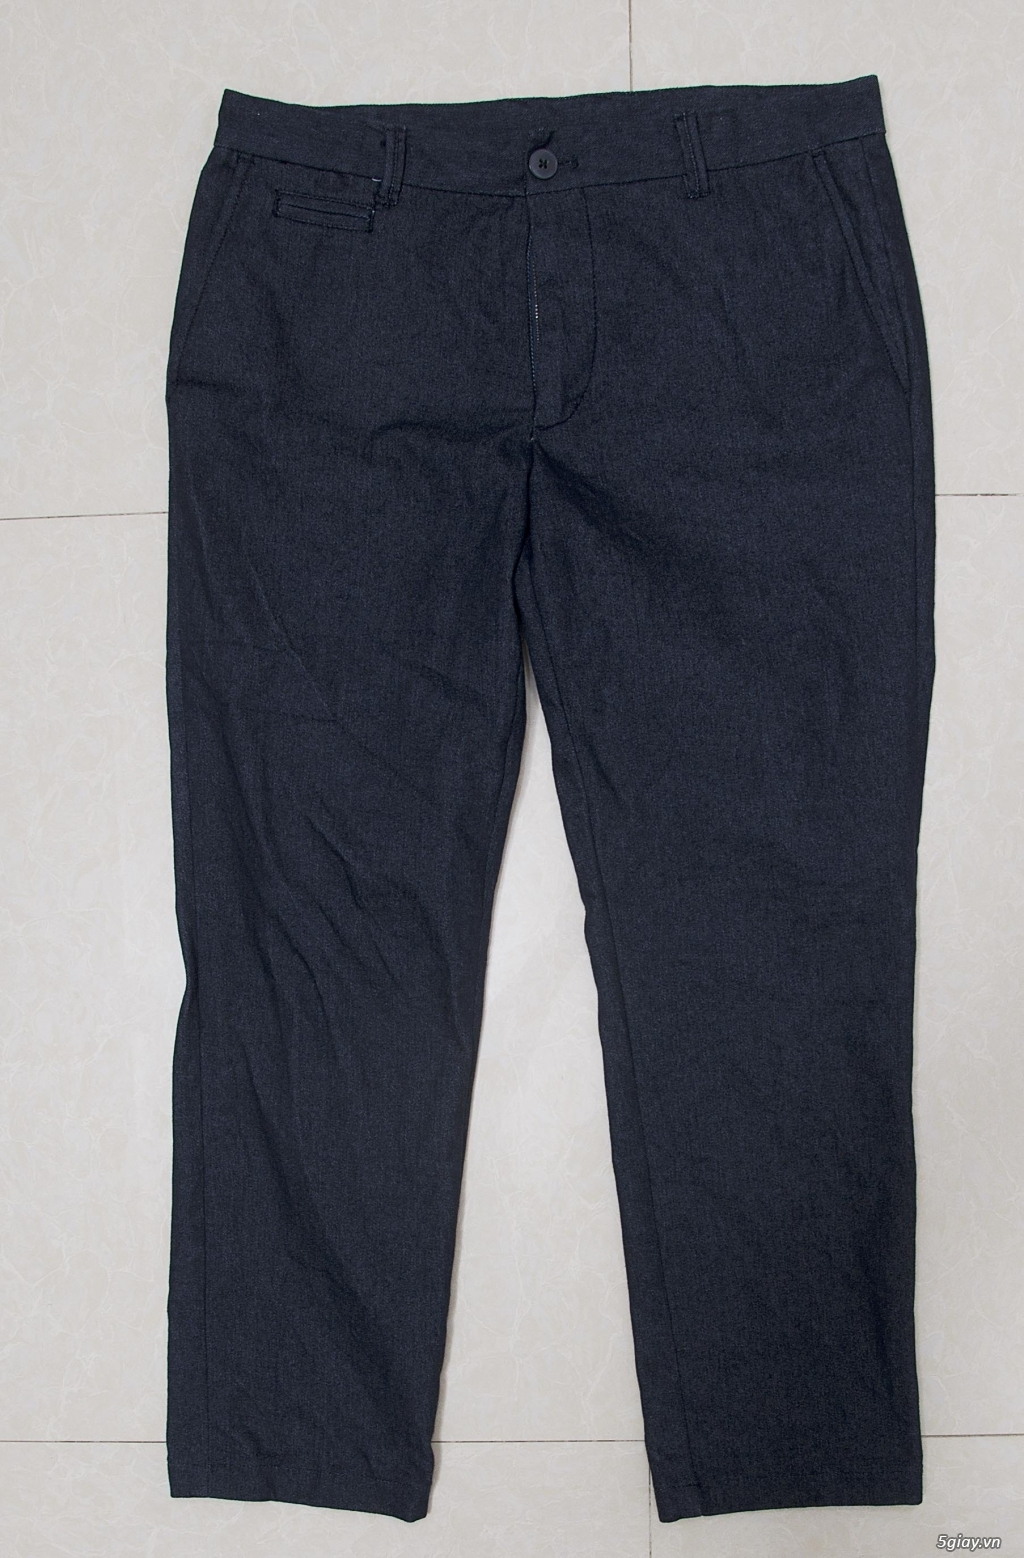 Jeans Authentic end nhanh 22h59' - 3/6/2021. - 9